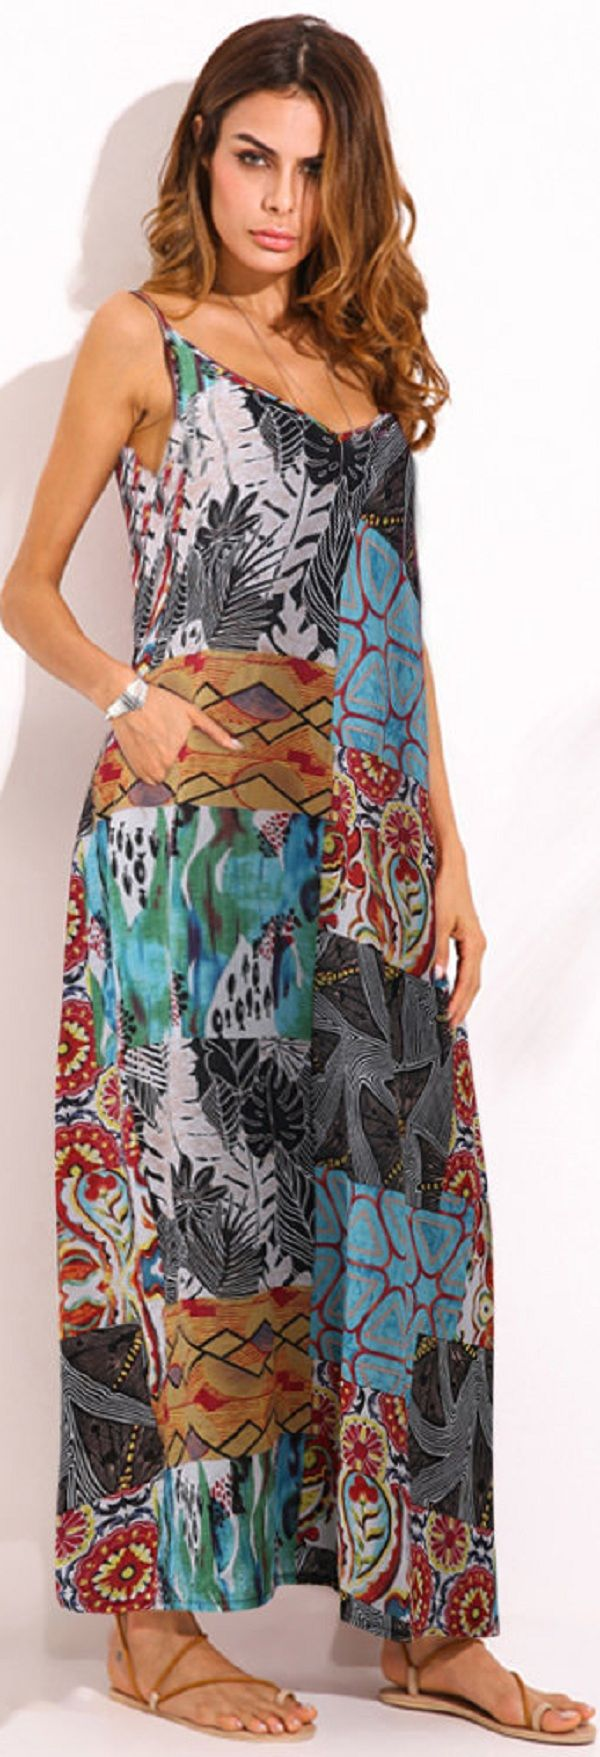 US$ 19.63 O-NEWE Bohemian Colorful Printed V-Neck Strap Maxi Dress For Women